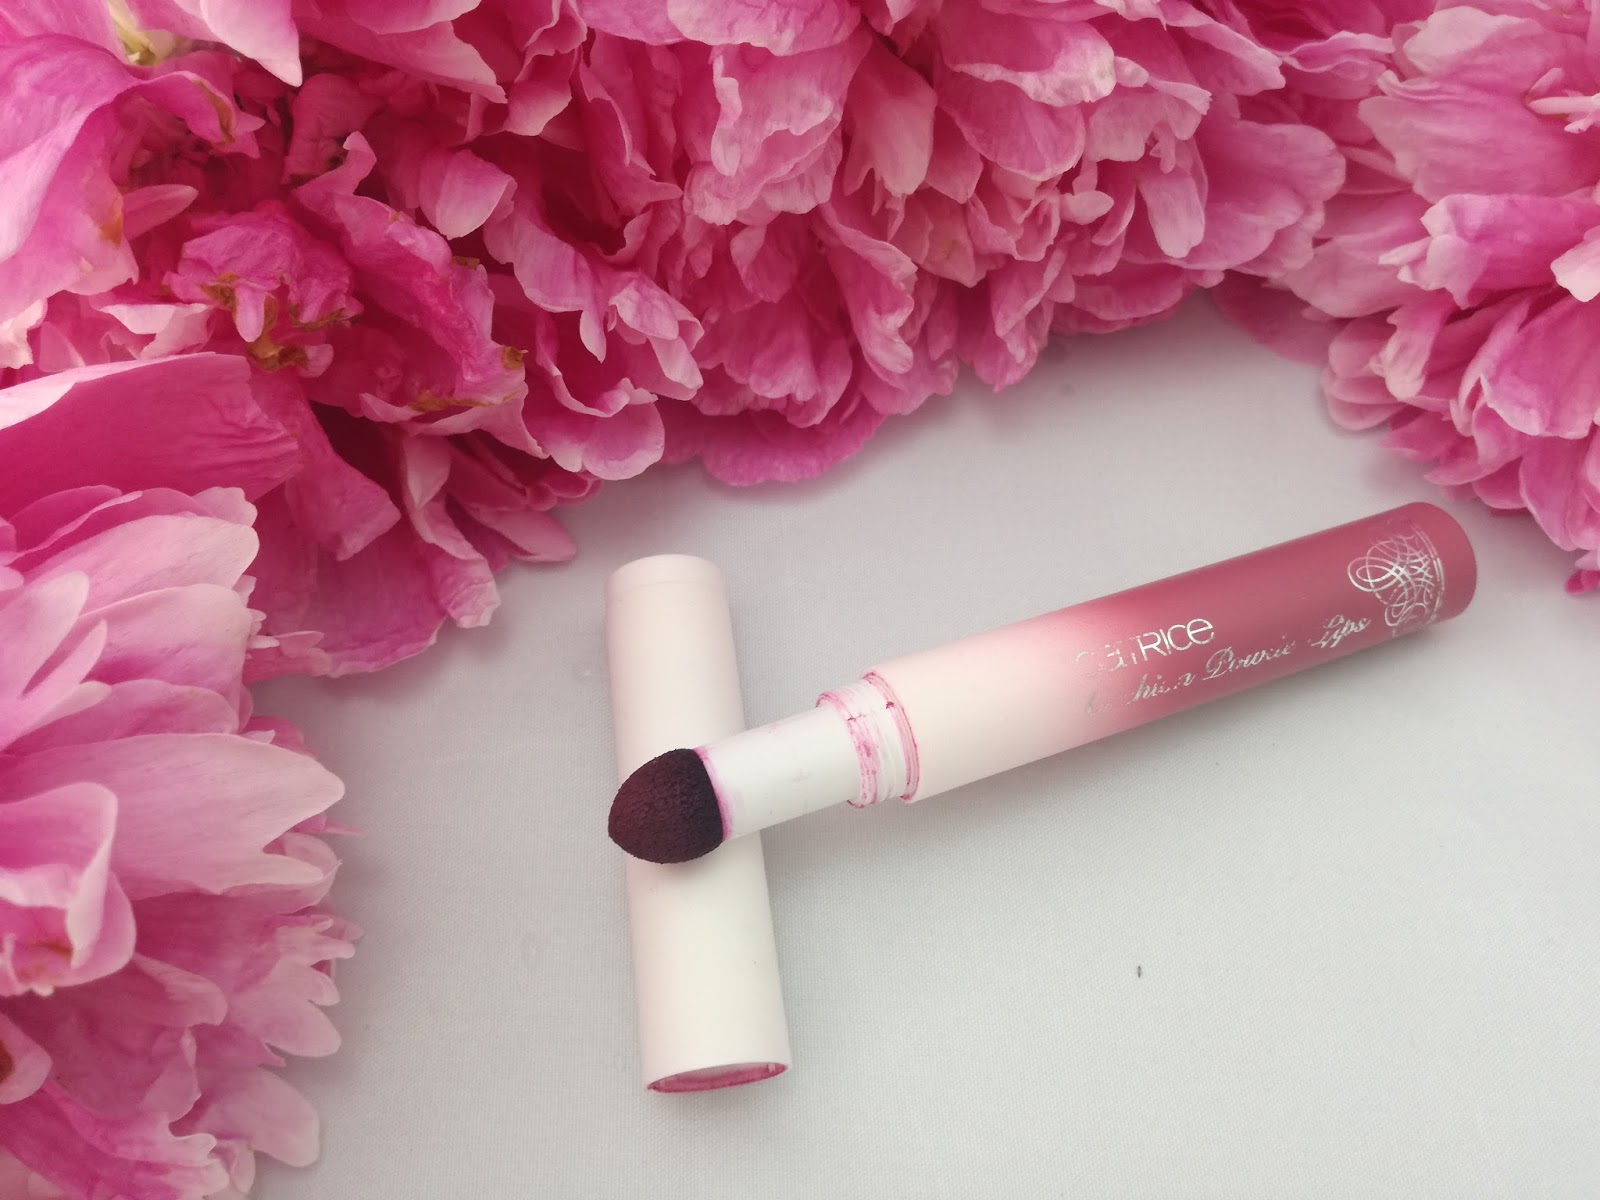 catrice-provocatrice-limited-edition-cushion-powder-lips-berry-bow